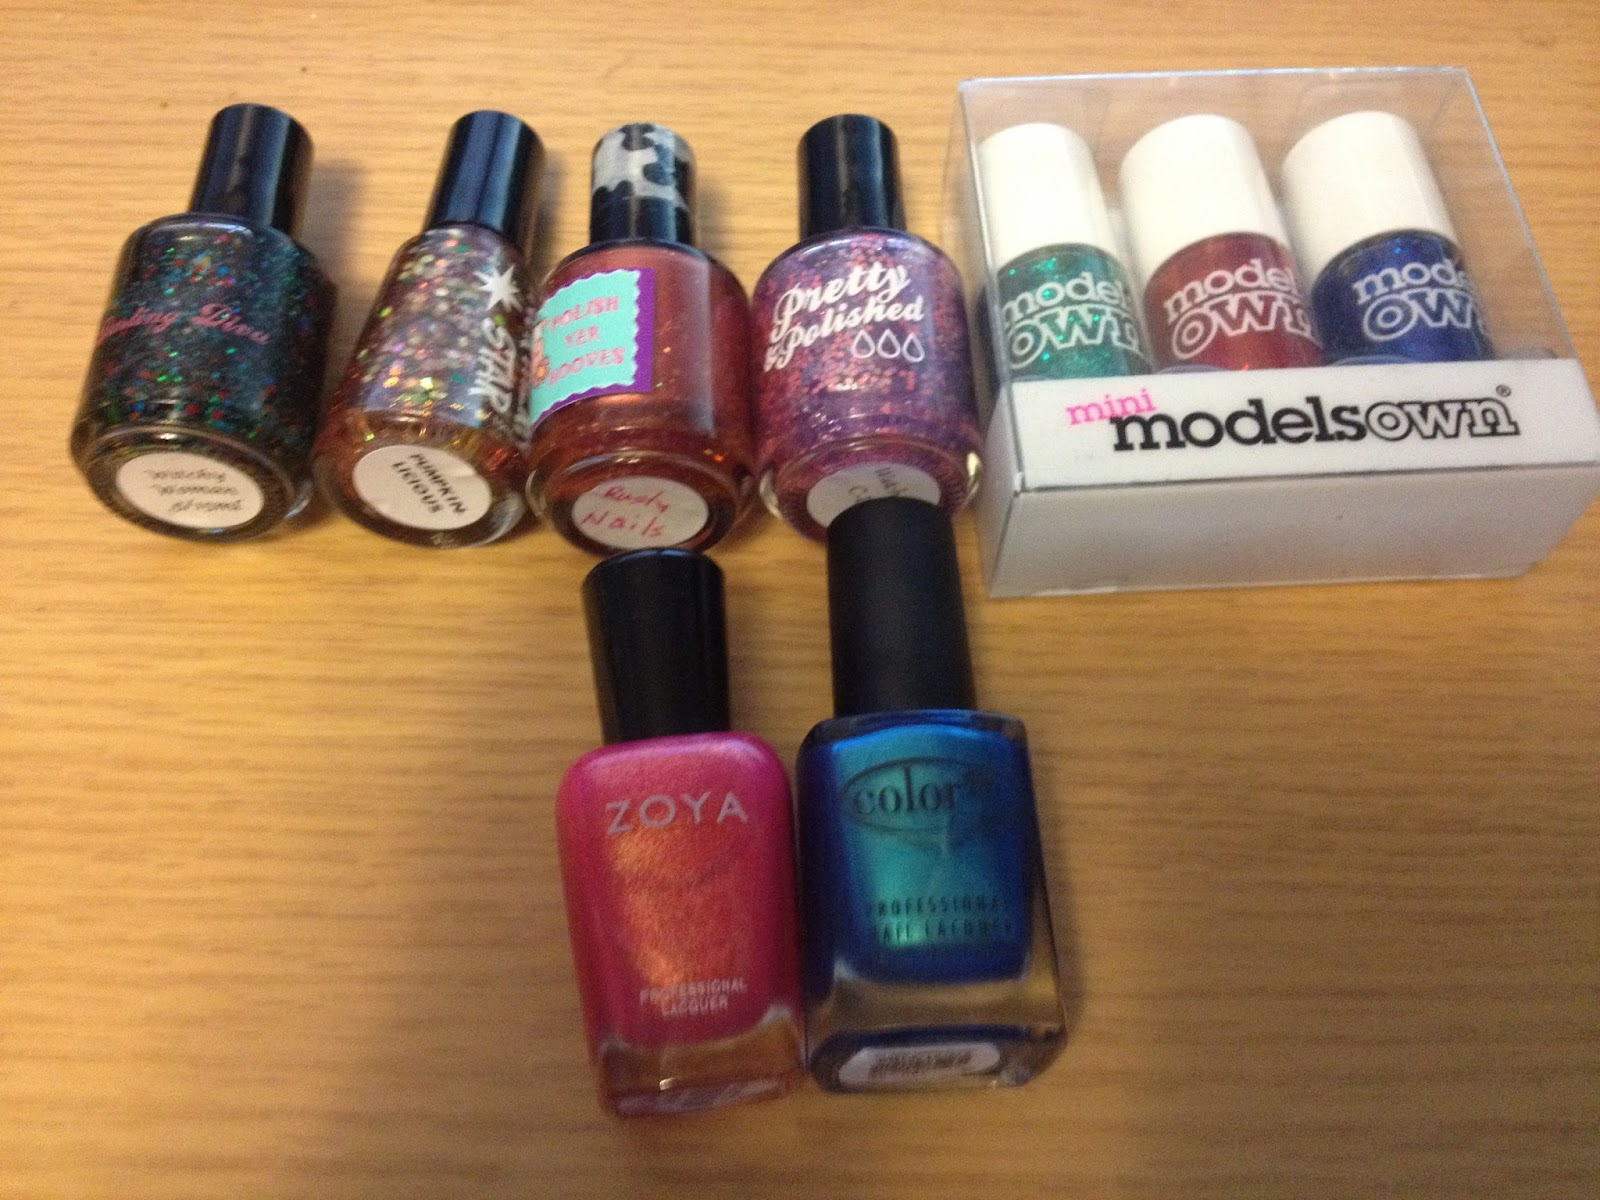 Darling Diva Northern Star Polish Yer Hooves Pretty & Polished Models Own Zoya Color Club